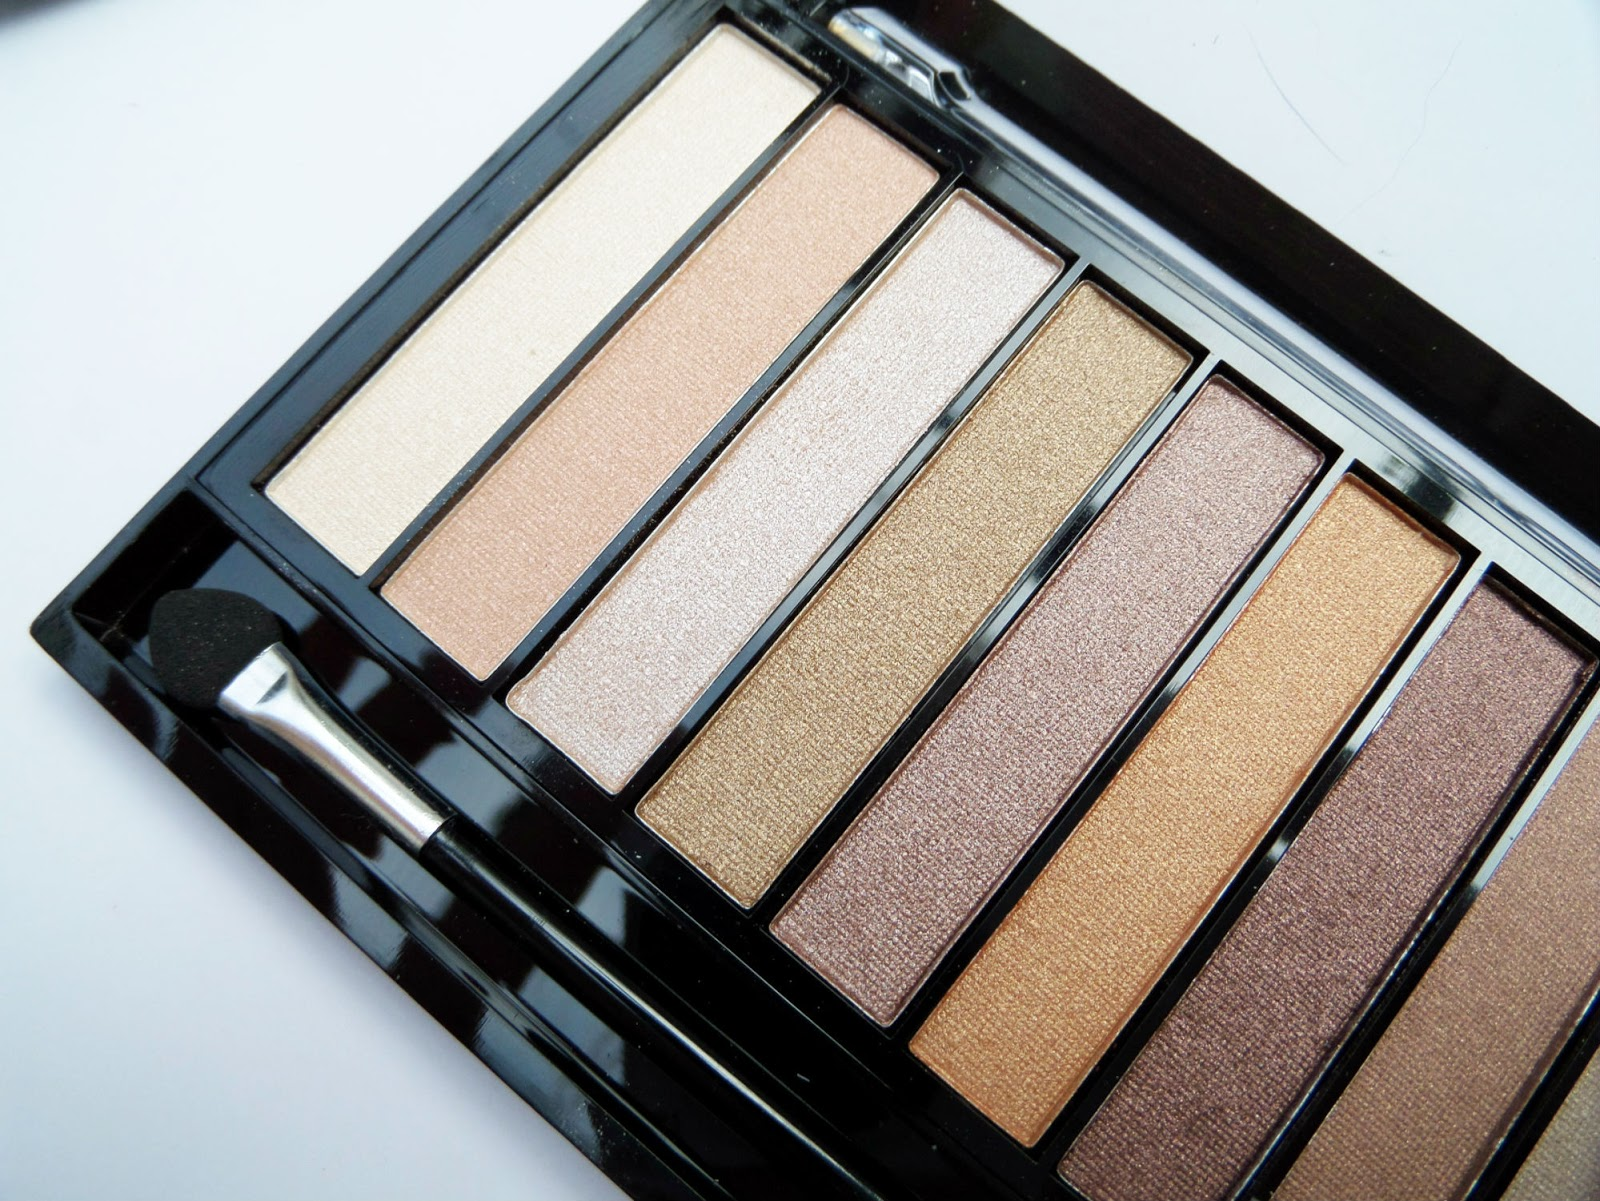 Colours of the Makeup Revolution Essential Shimmer Eyeshadow Palette